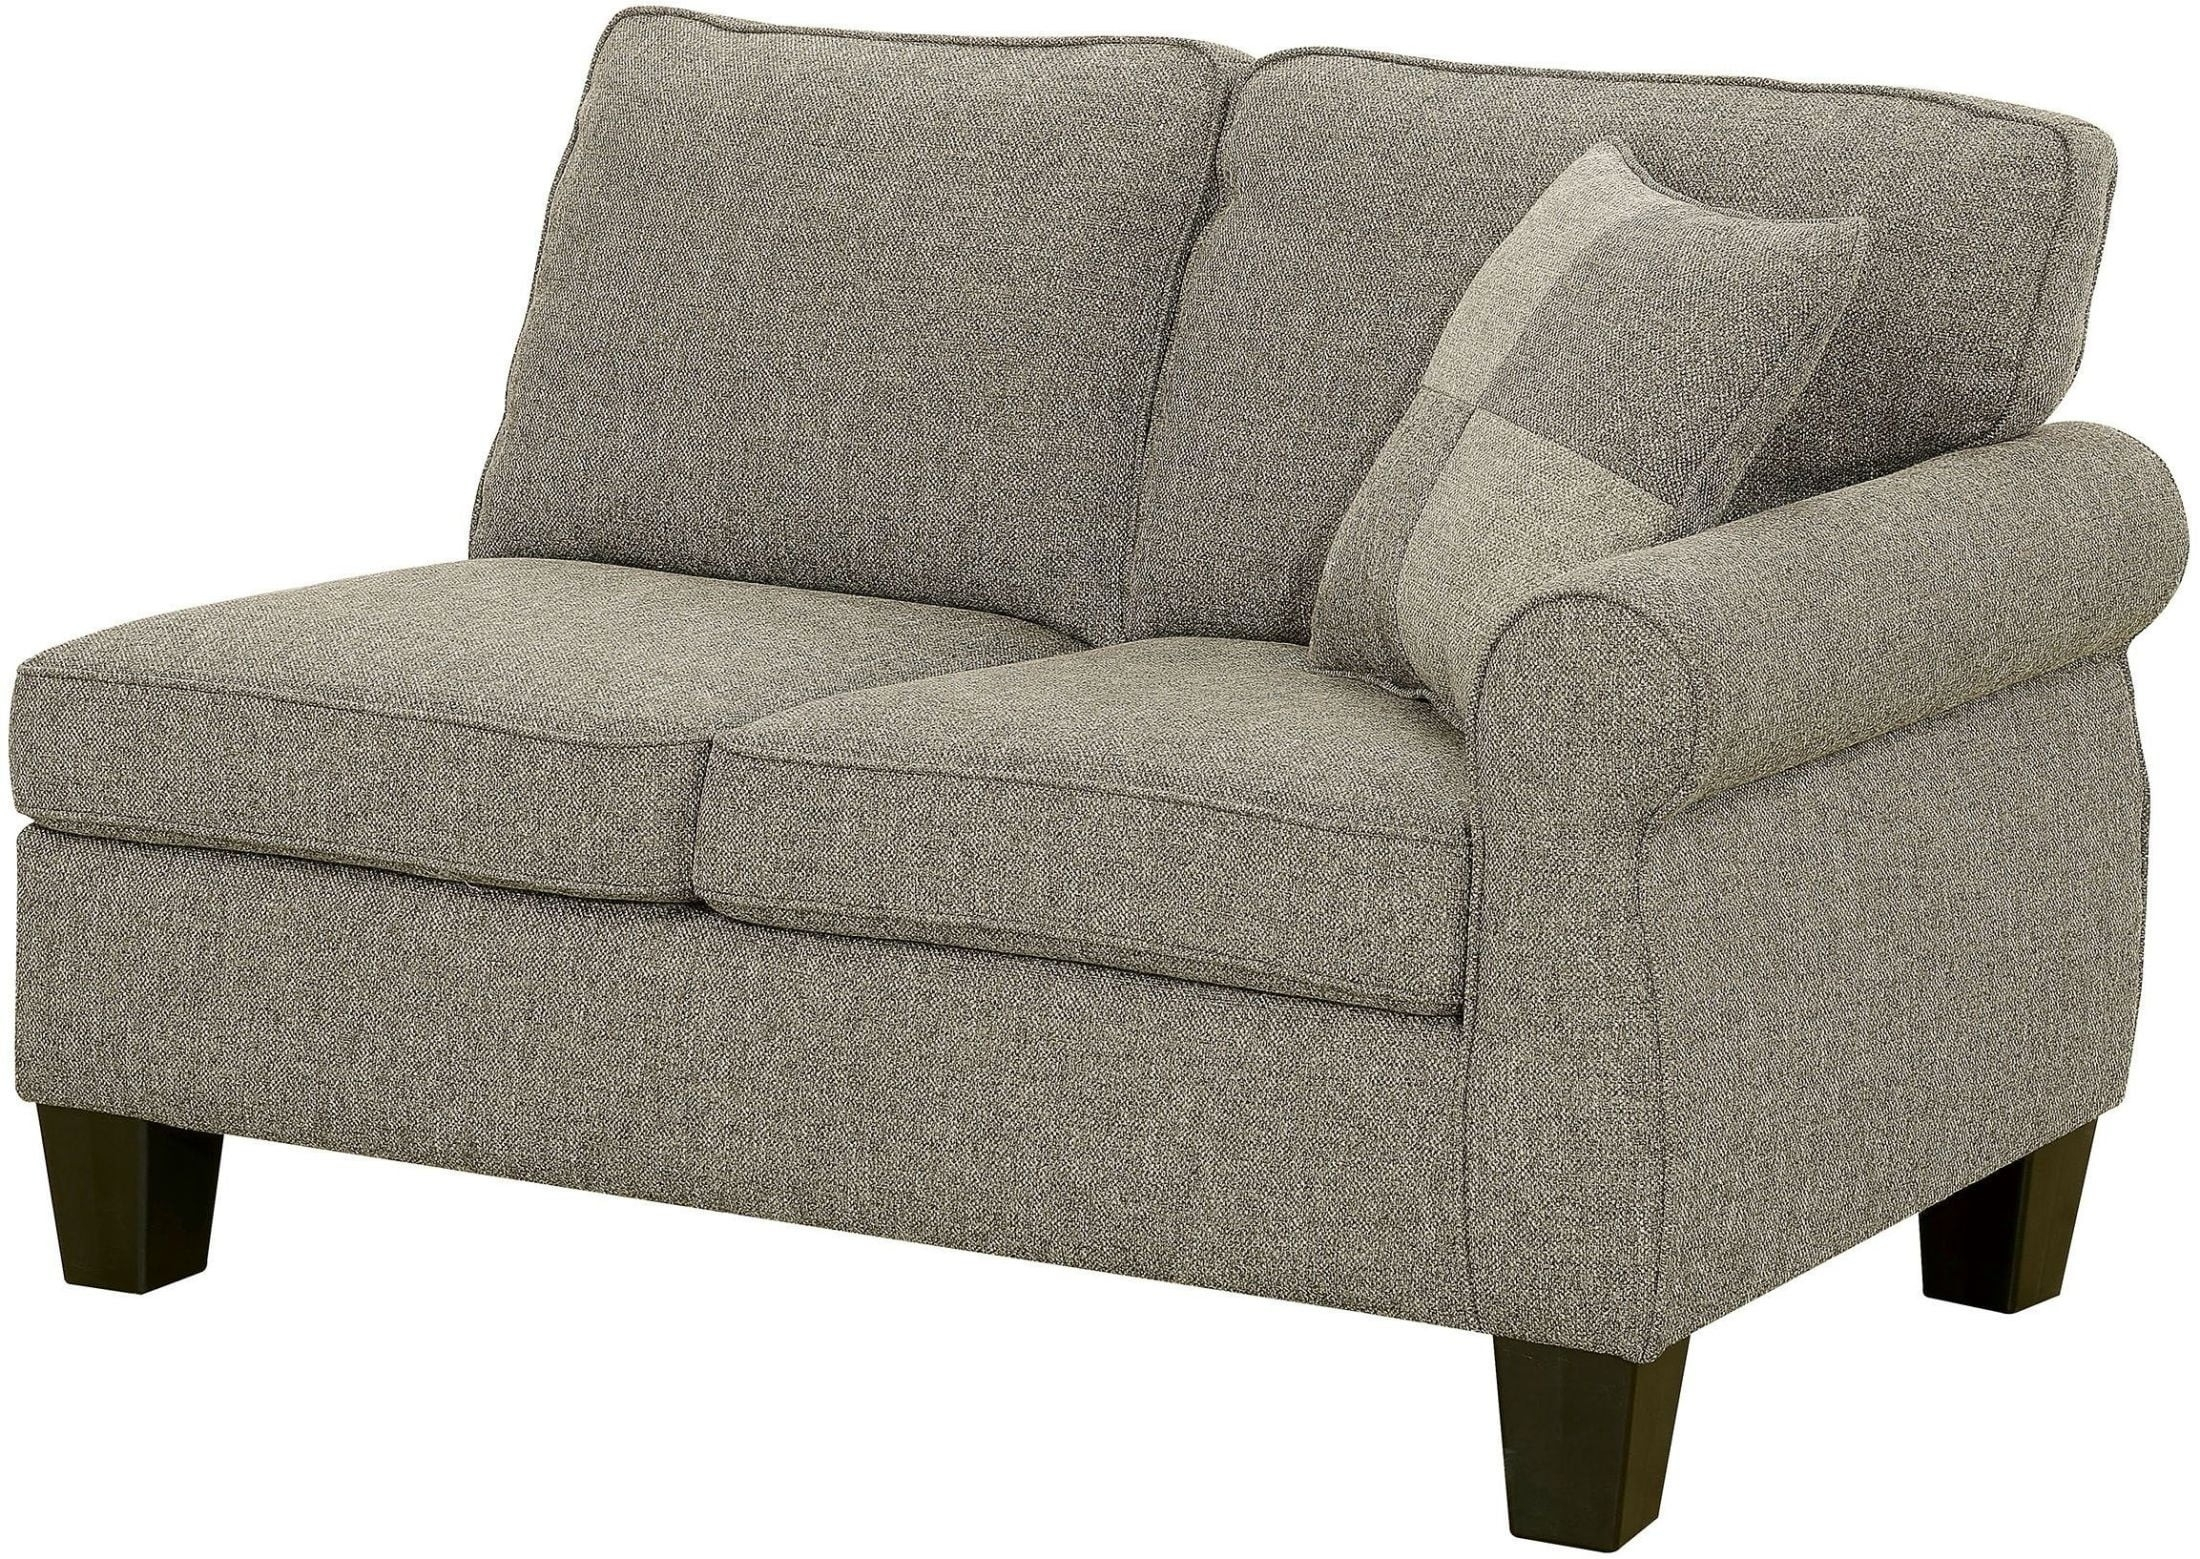 Furnitureetc | Furniture & More Rhian Dark Gray Sectional From for Adeline 3 Piece Sectionals (Image 13 of 30)